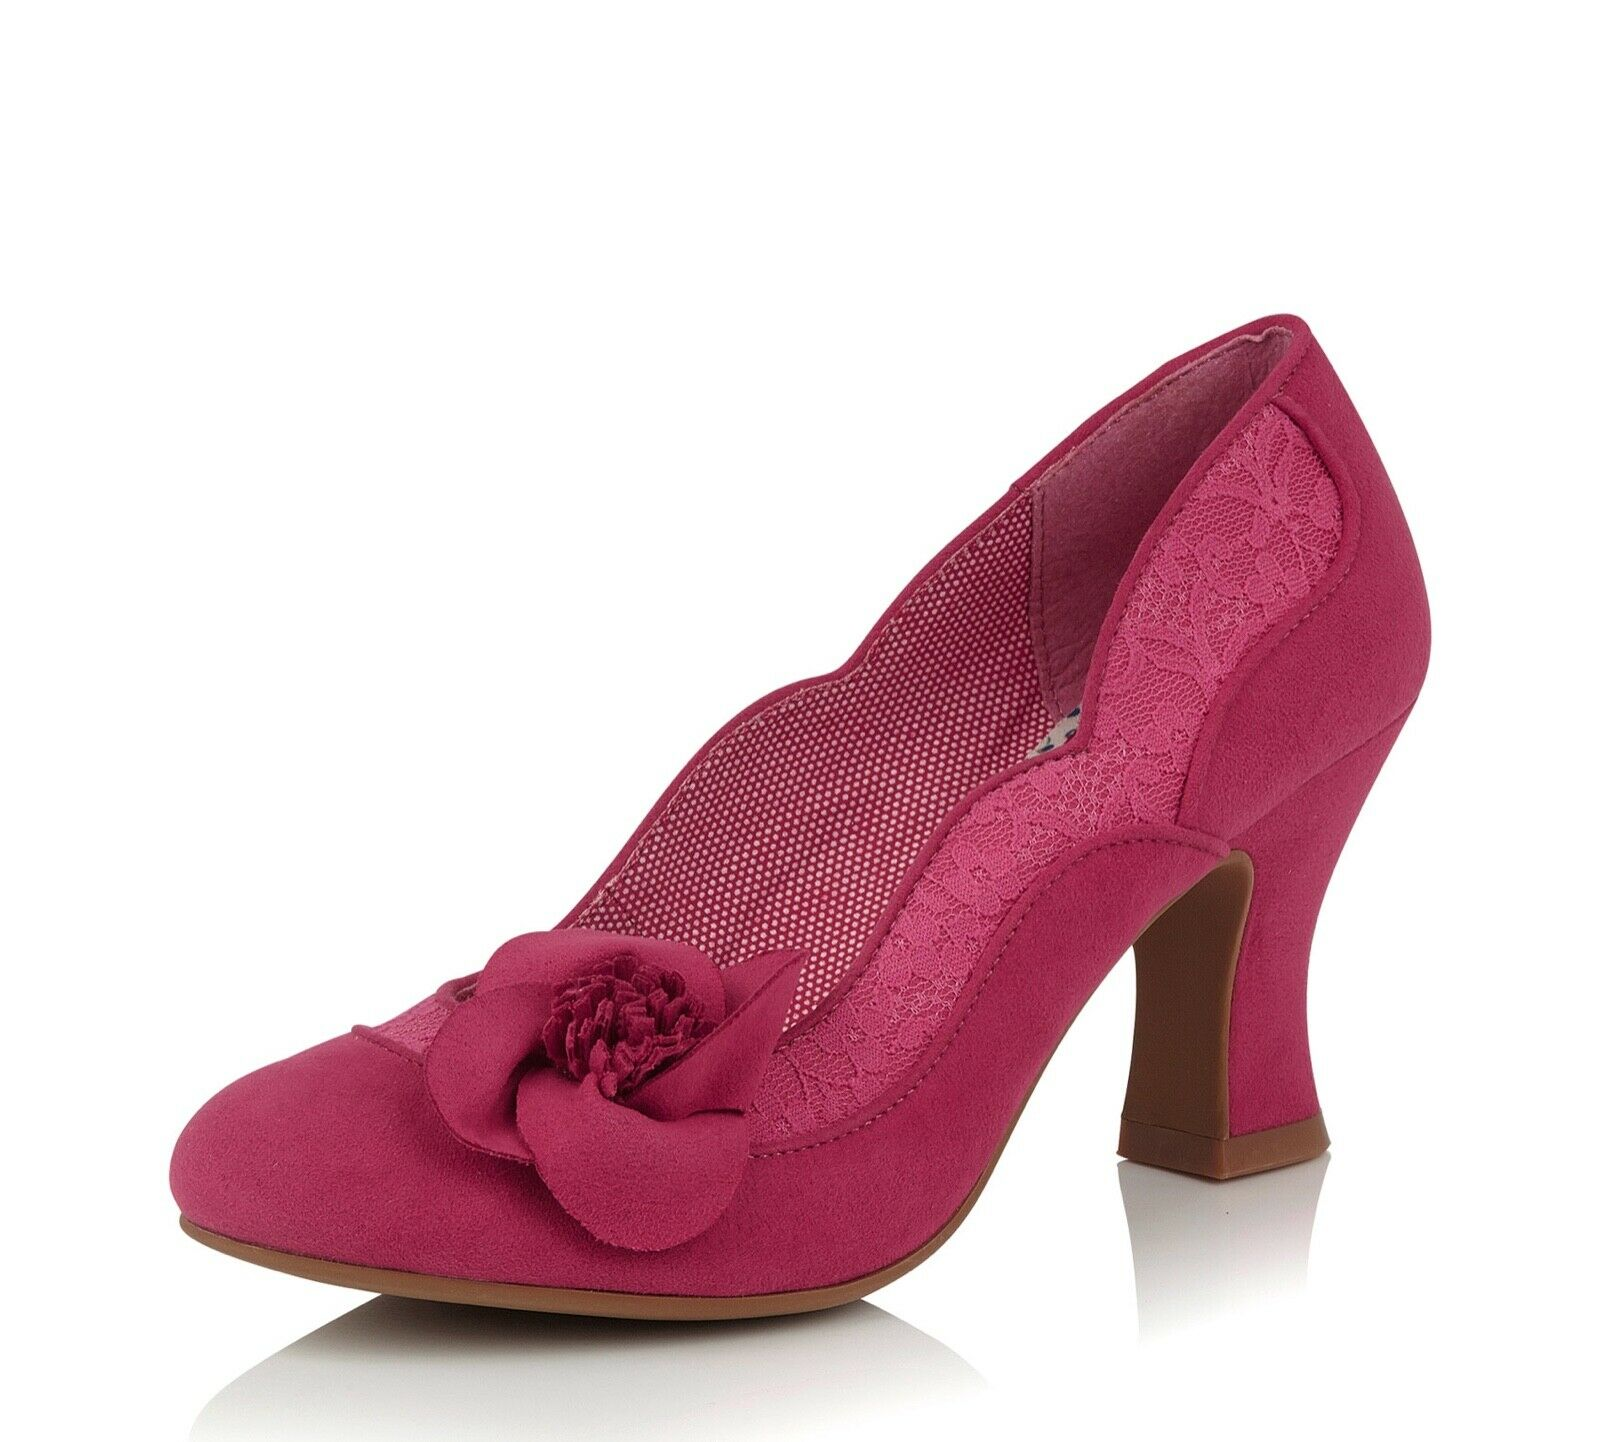 RUBY SHOO NEW Veronica Rose Fuchsia Talon Haut Mode Cour Chaussures Tailles 3-8